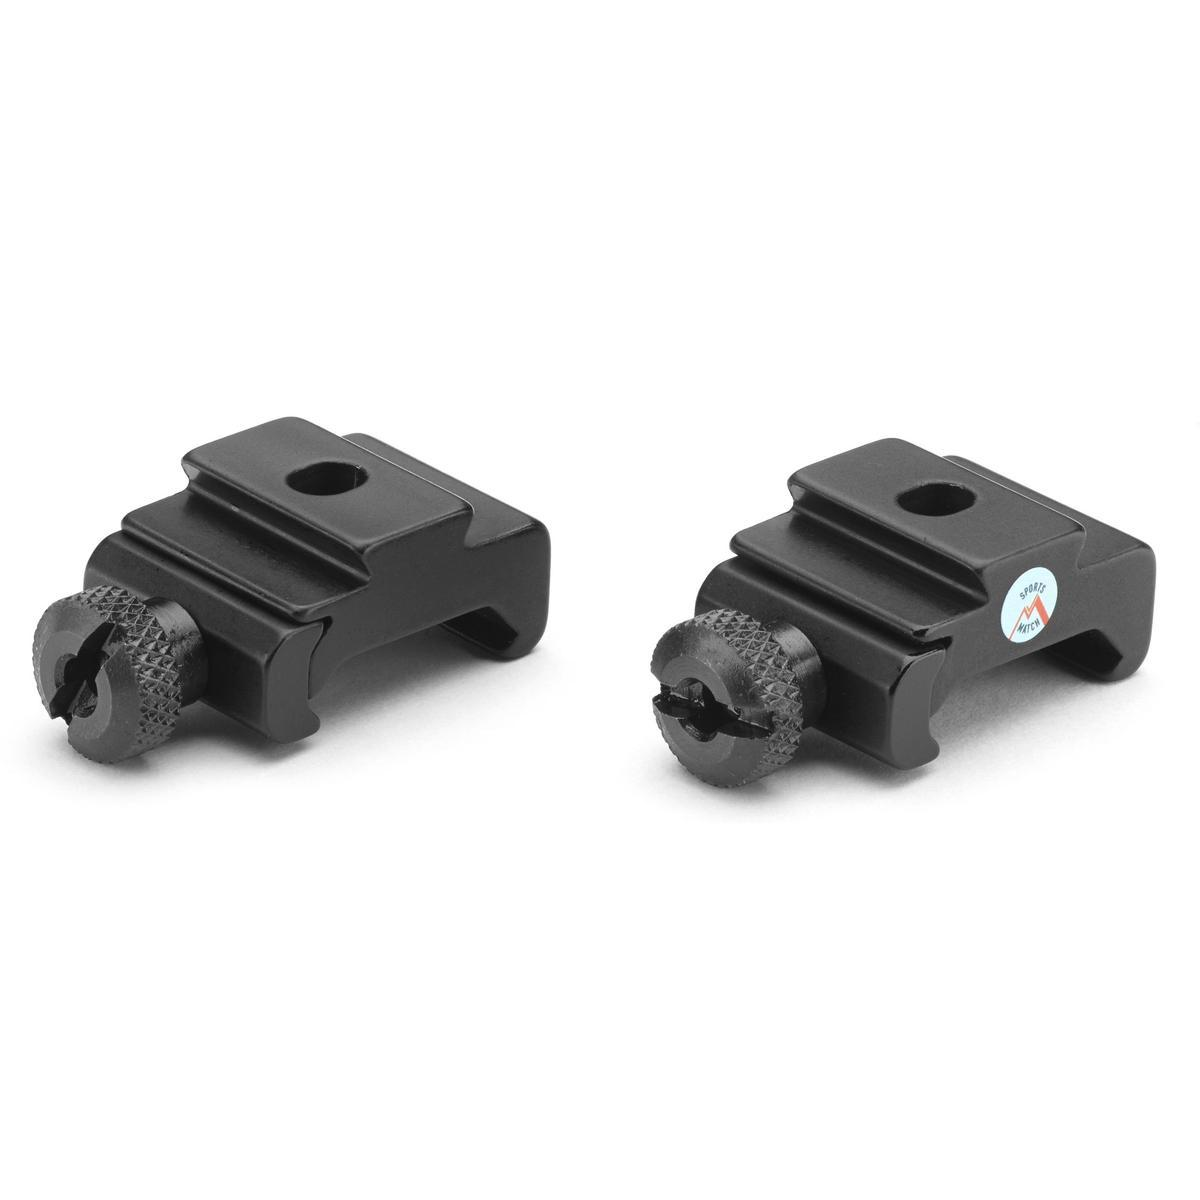 RB6 Weaver/Picatinny to Dovetail Adaptors Pair by Bisley - reid outdoors